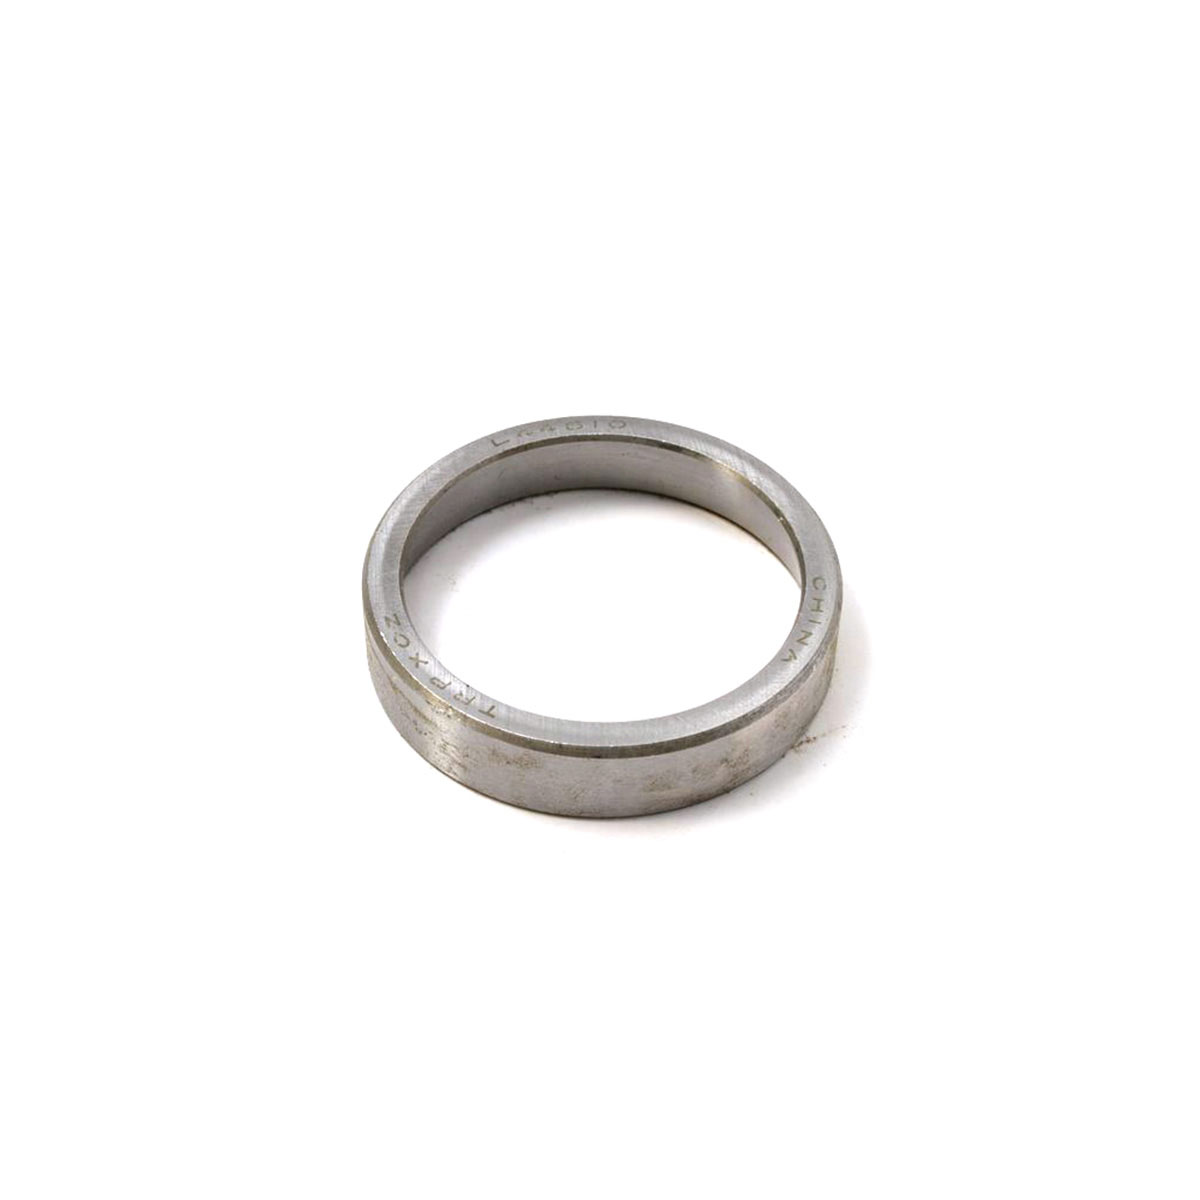 Scag Cup Tapered Roller Bearing 481895